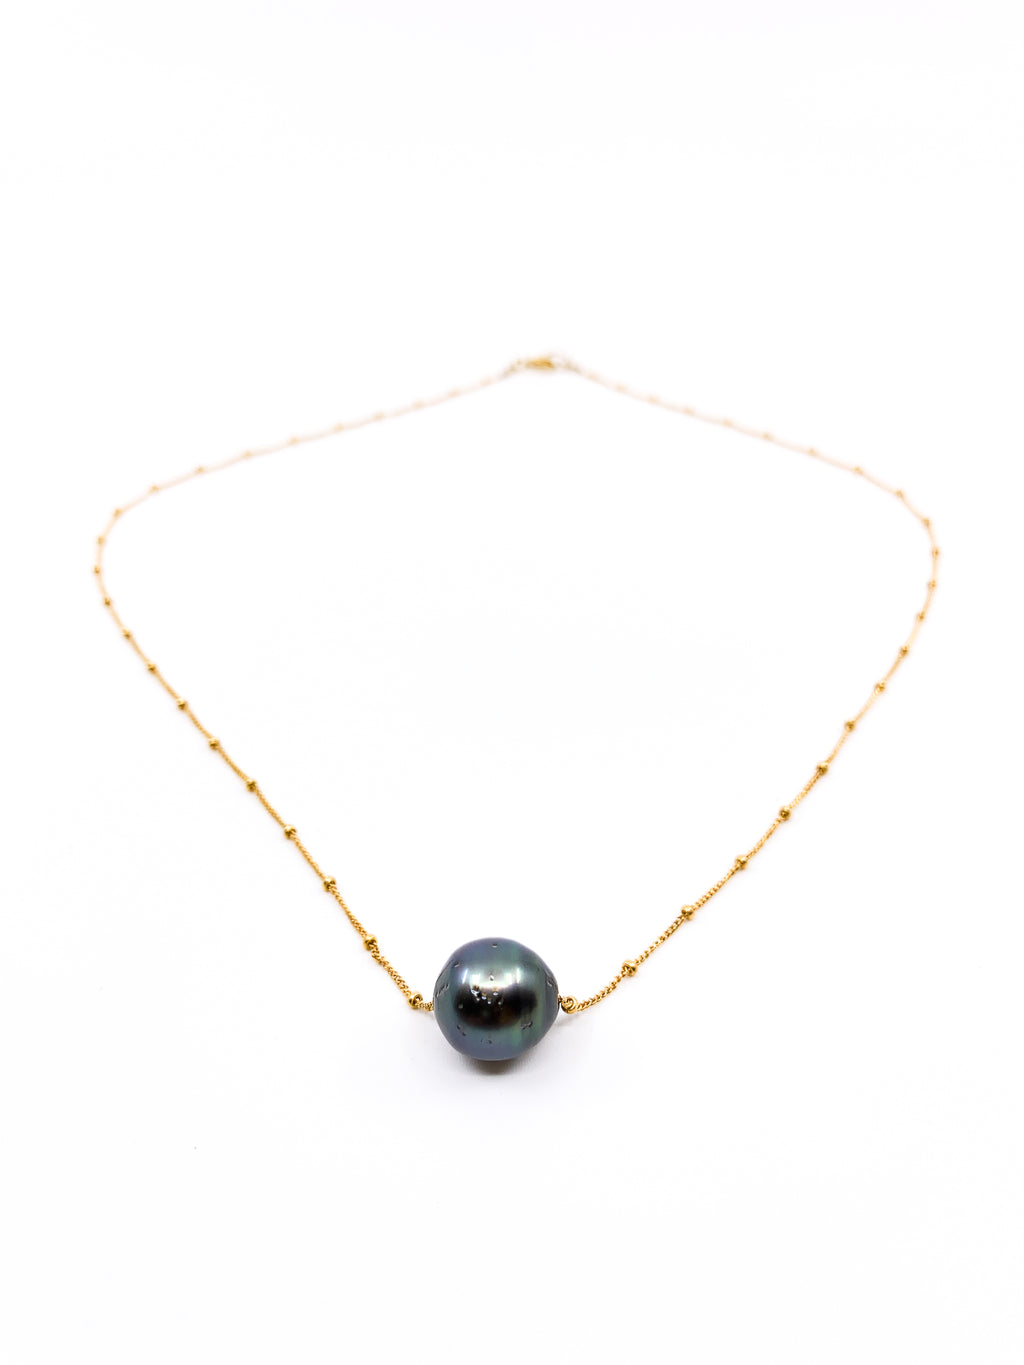 tahitian pearl delicate gold chain necklace by eve black jewelry made in Hawaii